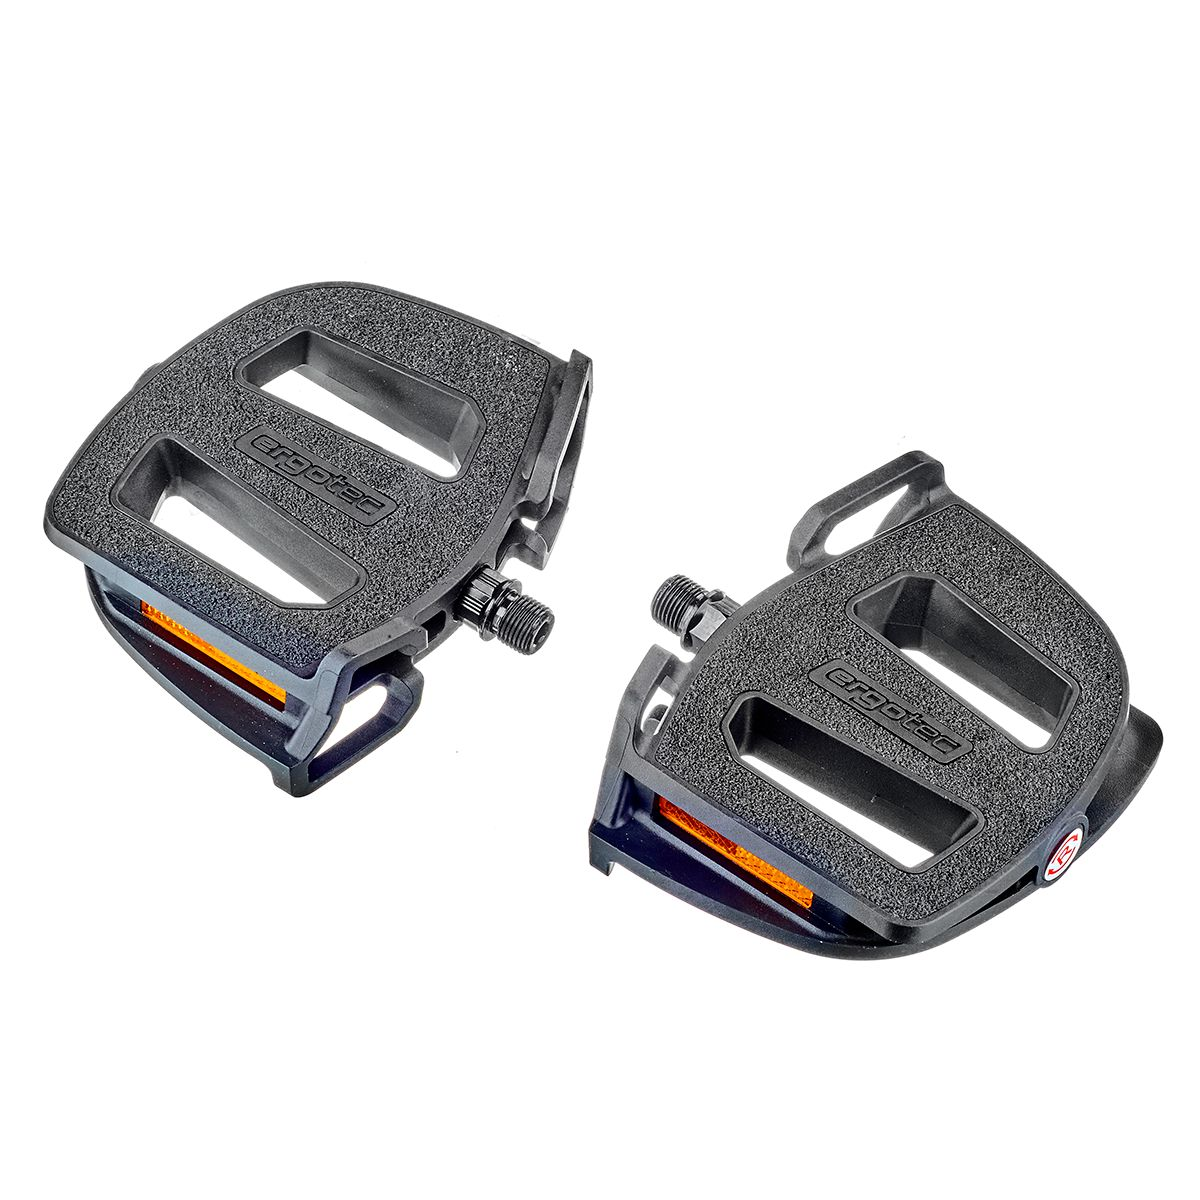 EP-2 comfort pedals for city and electric bikes